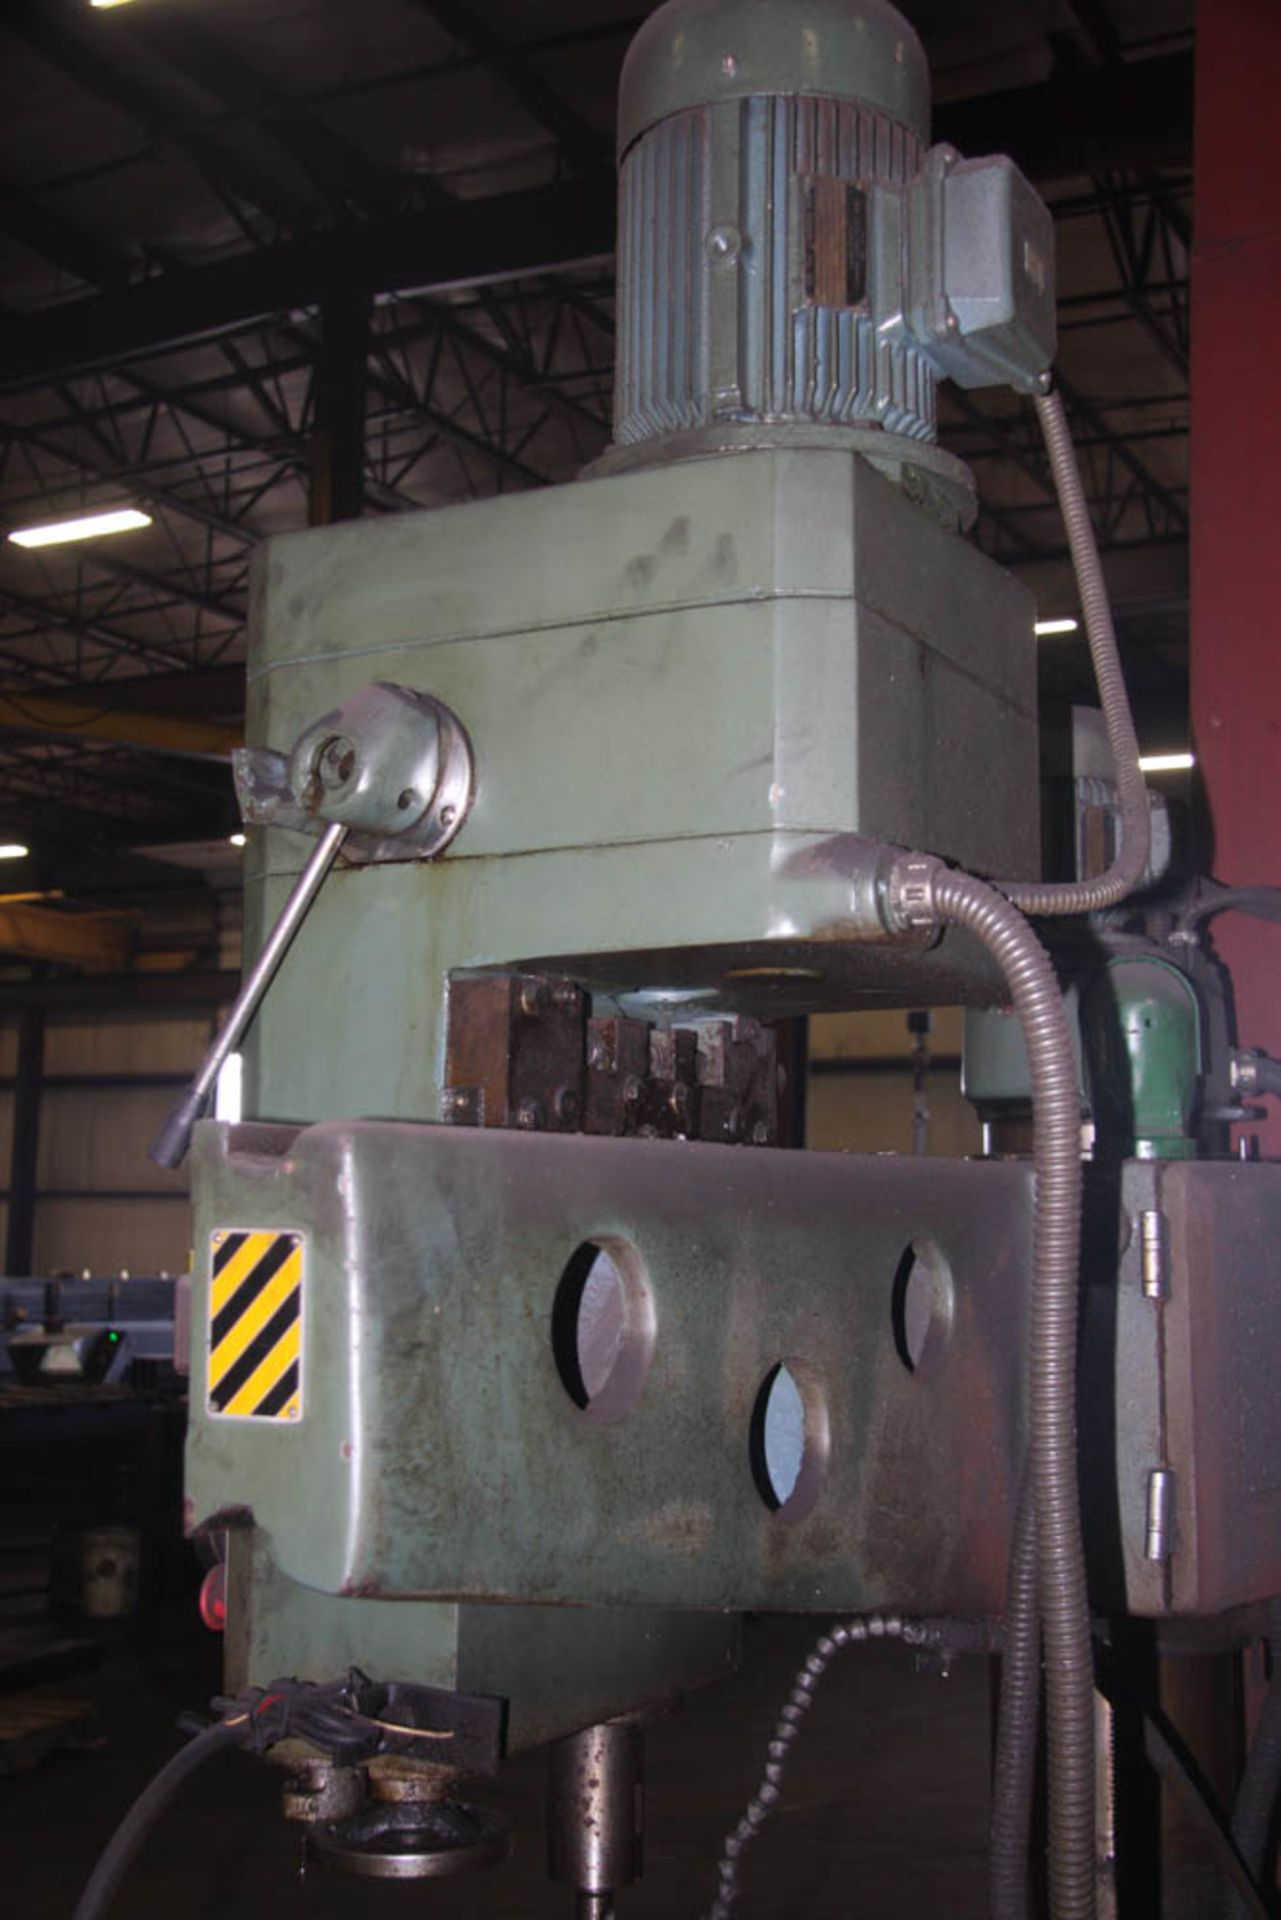 """SUPERMAX MDL. HRD-1000 3' X 9' RADIAL ARM DRILL, POWER ELEVATION, COOLANT, 17"""" X 18"""" X 18"""" T-SLOTTED - Image 11 of 11"""